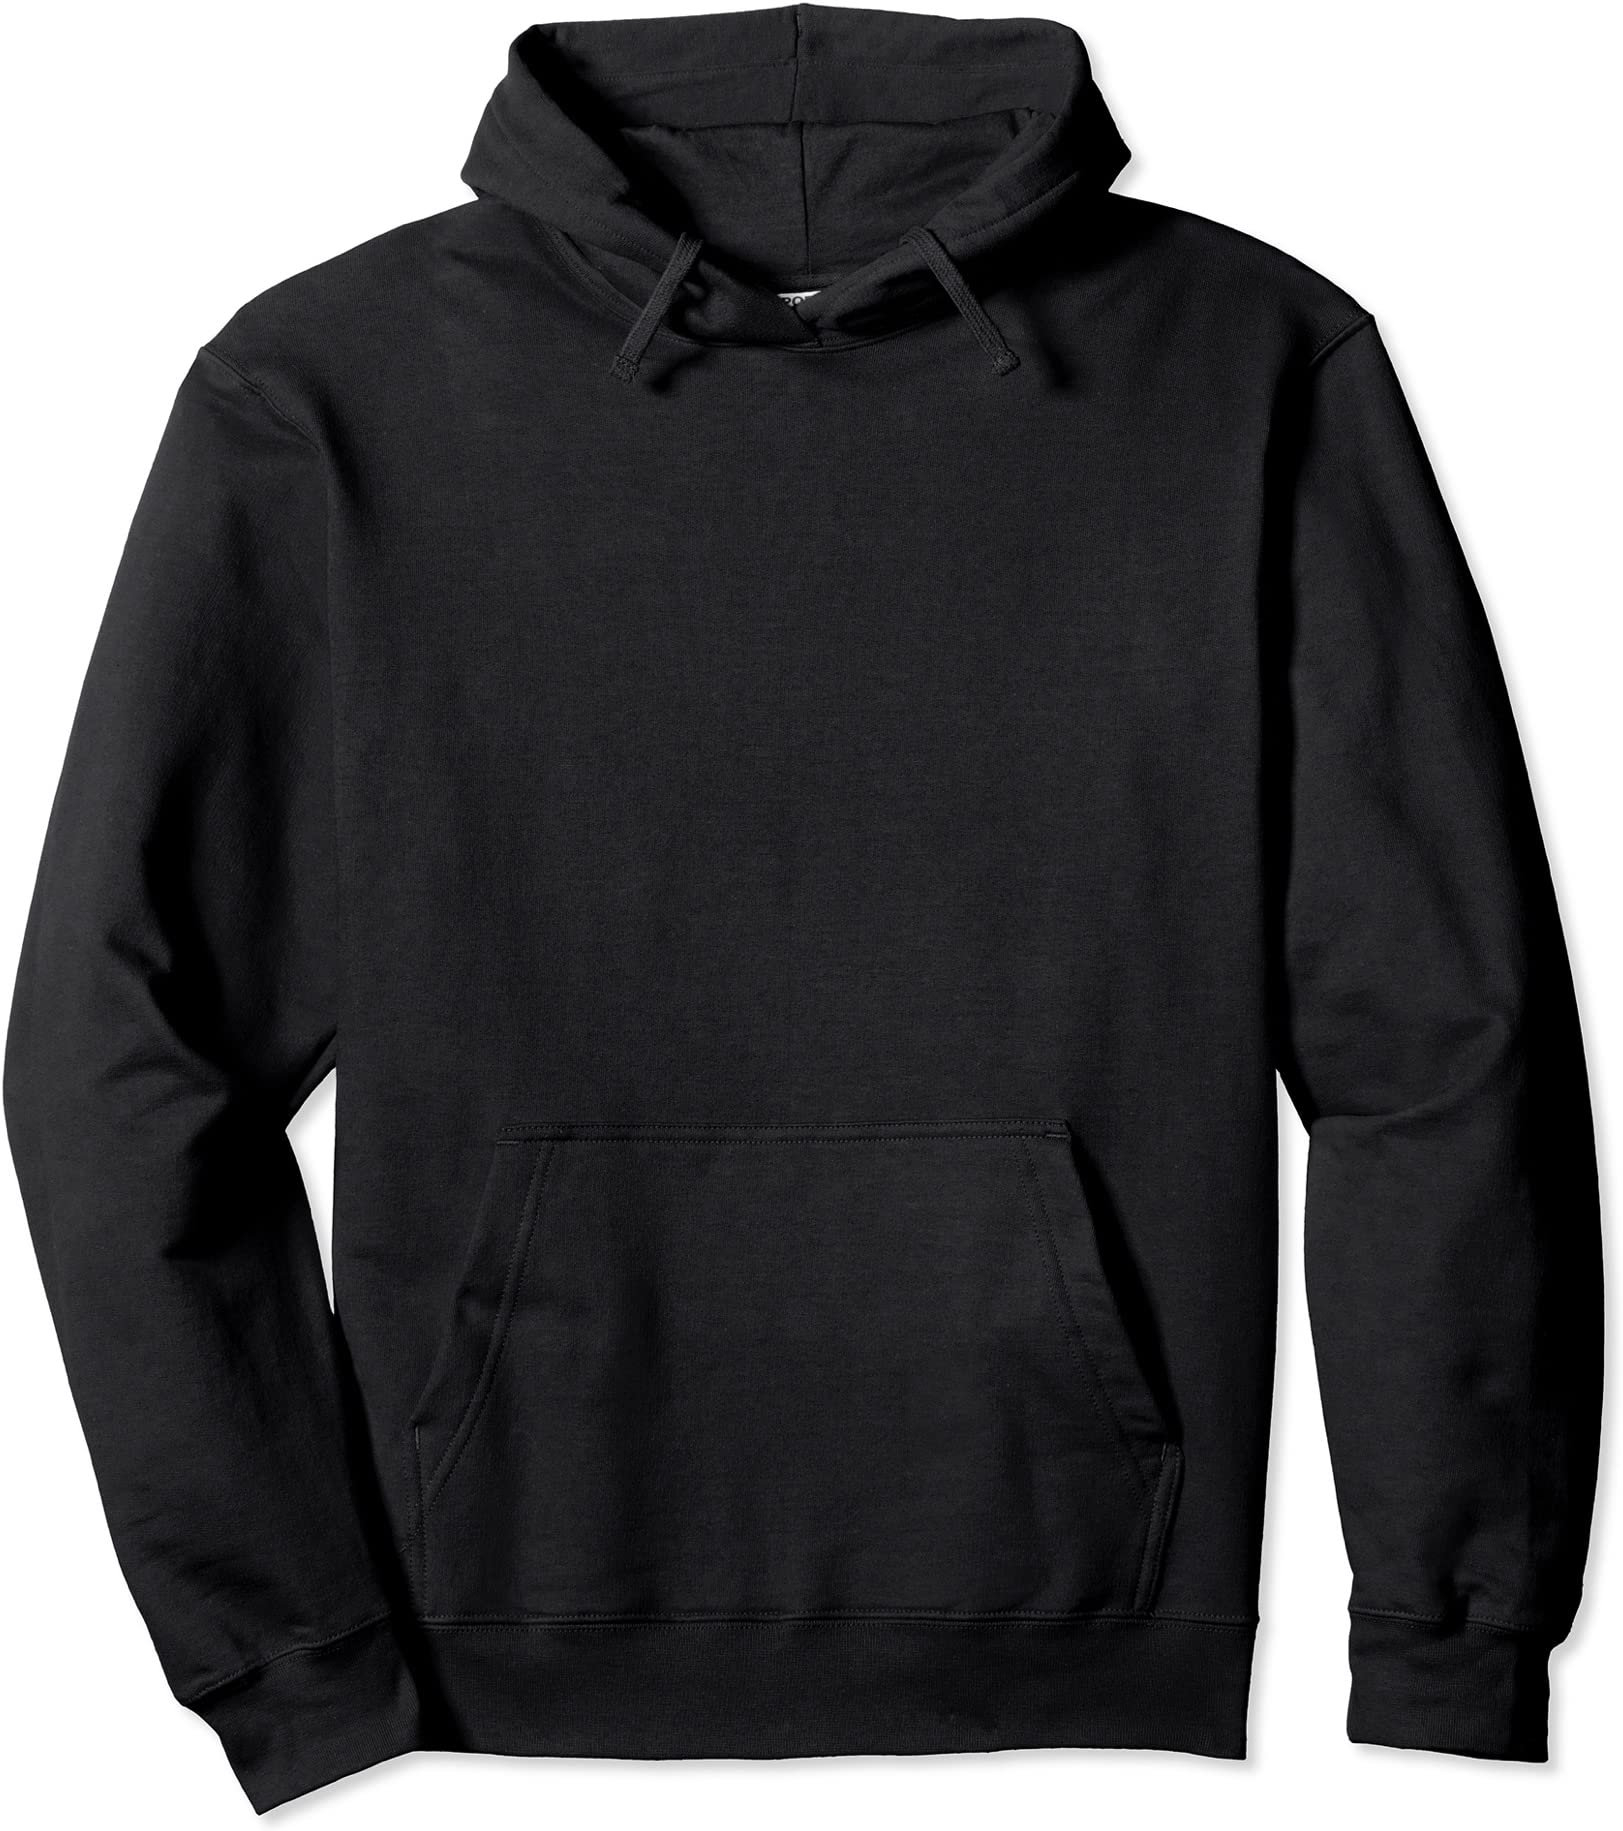 master baiter hoodie hooded funny fishing hoody tops jumpers clothing warm new